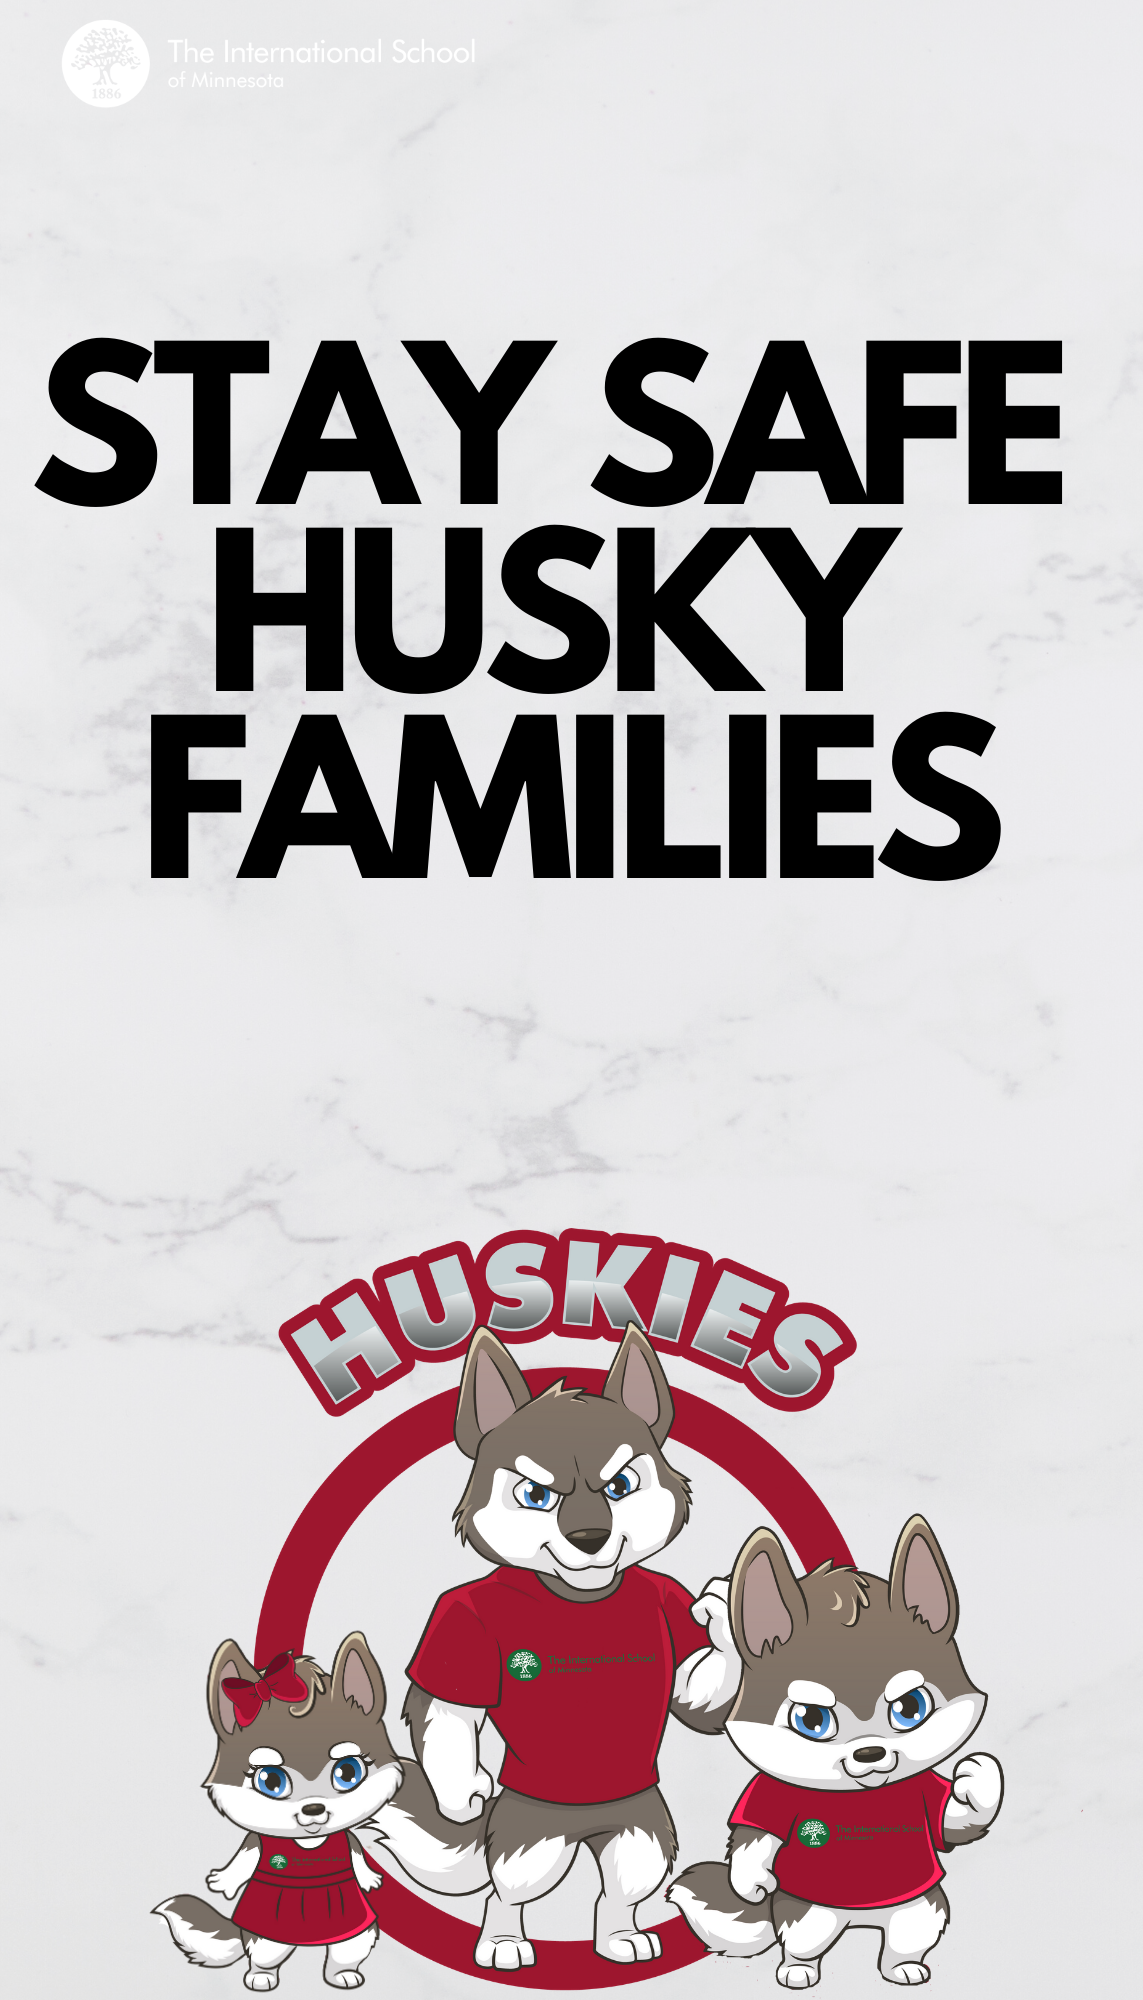 STAY SAFE HUSKIES FAMILIES (2)